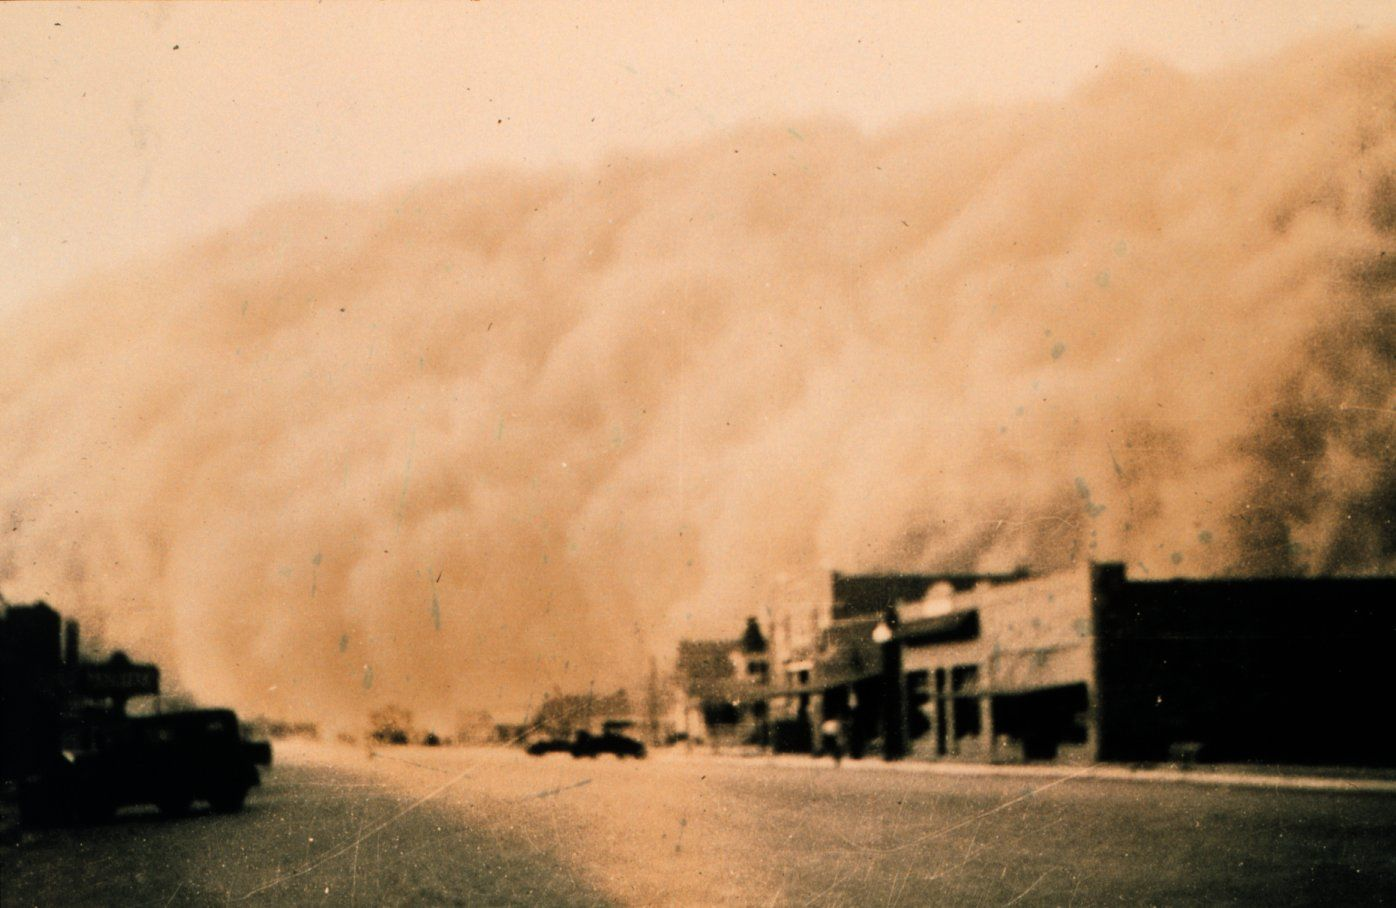 What Caused The Us Dust Bowl Drought Of The 1930's?